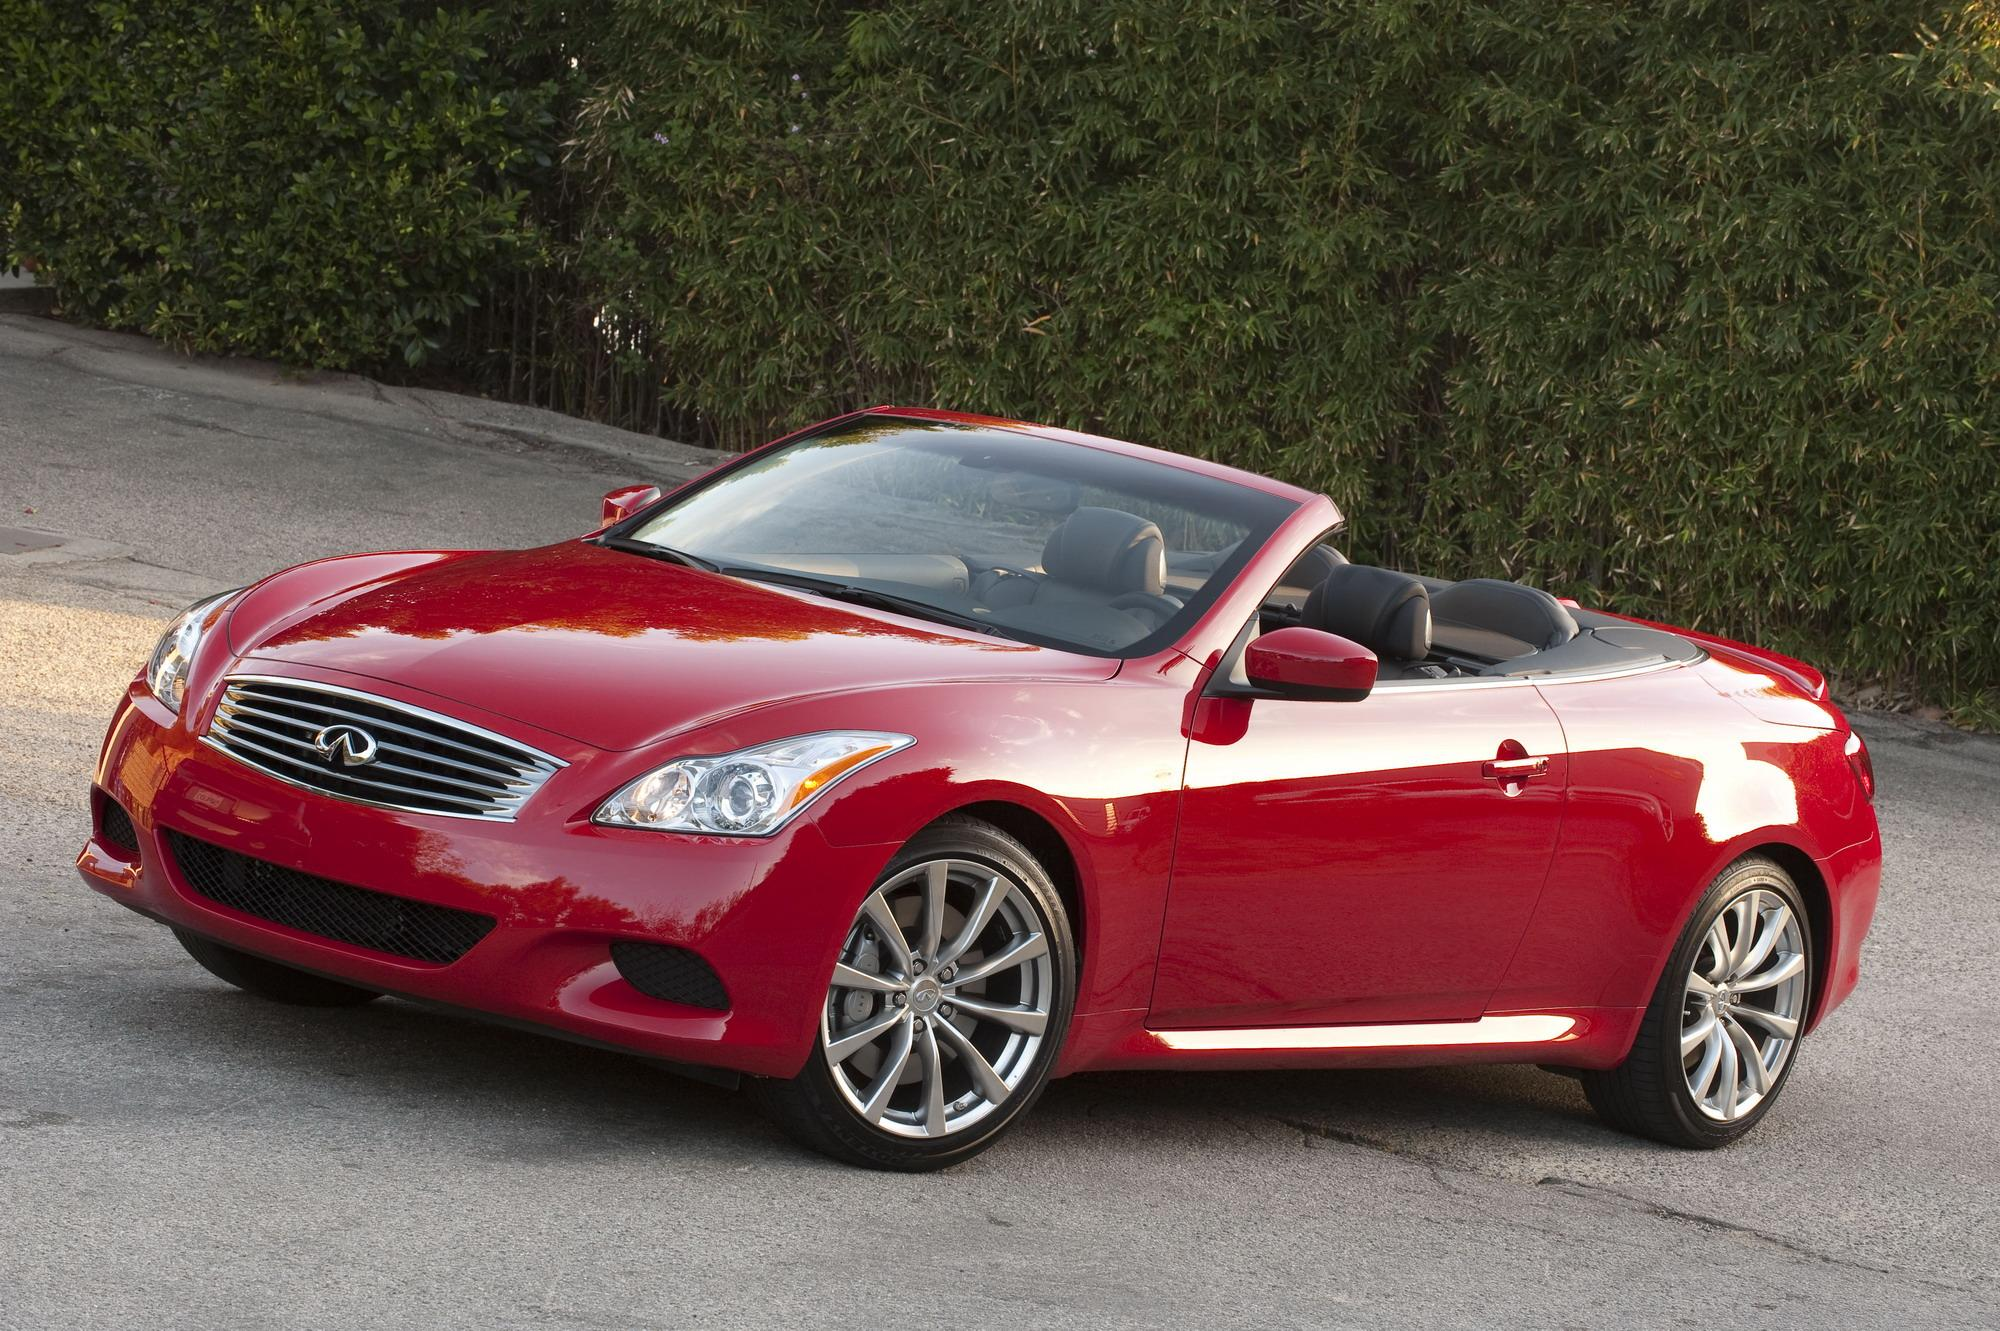 infinity saloon review infiniti parkers g convertible